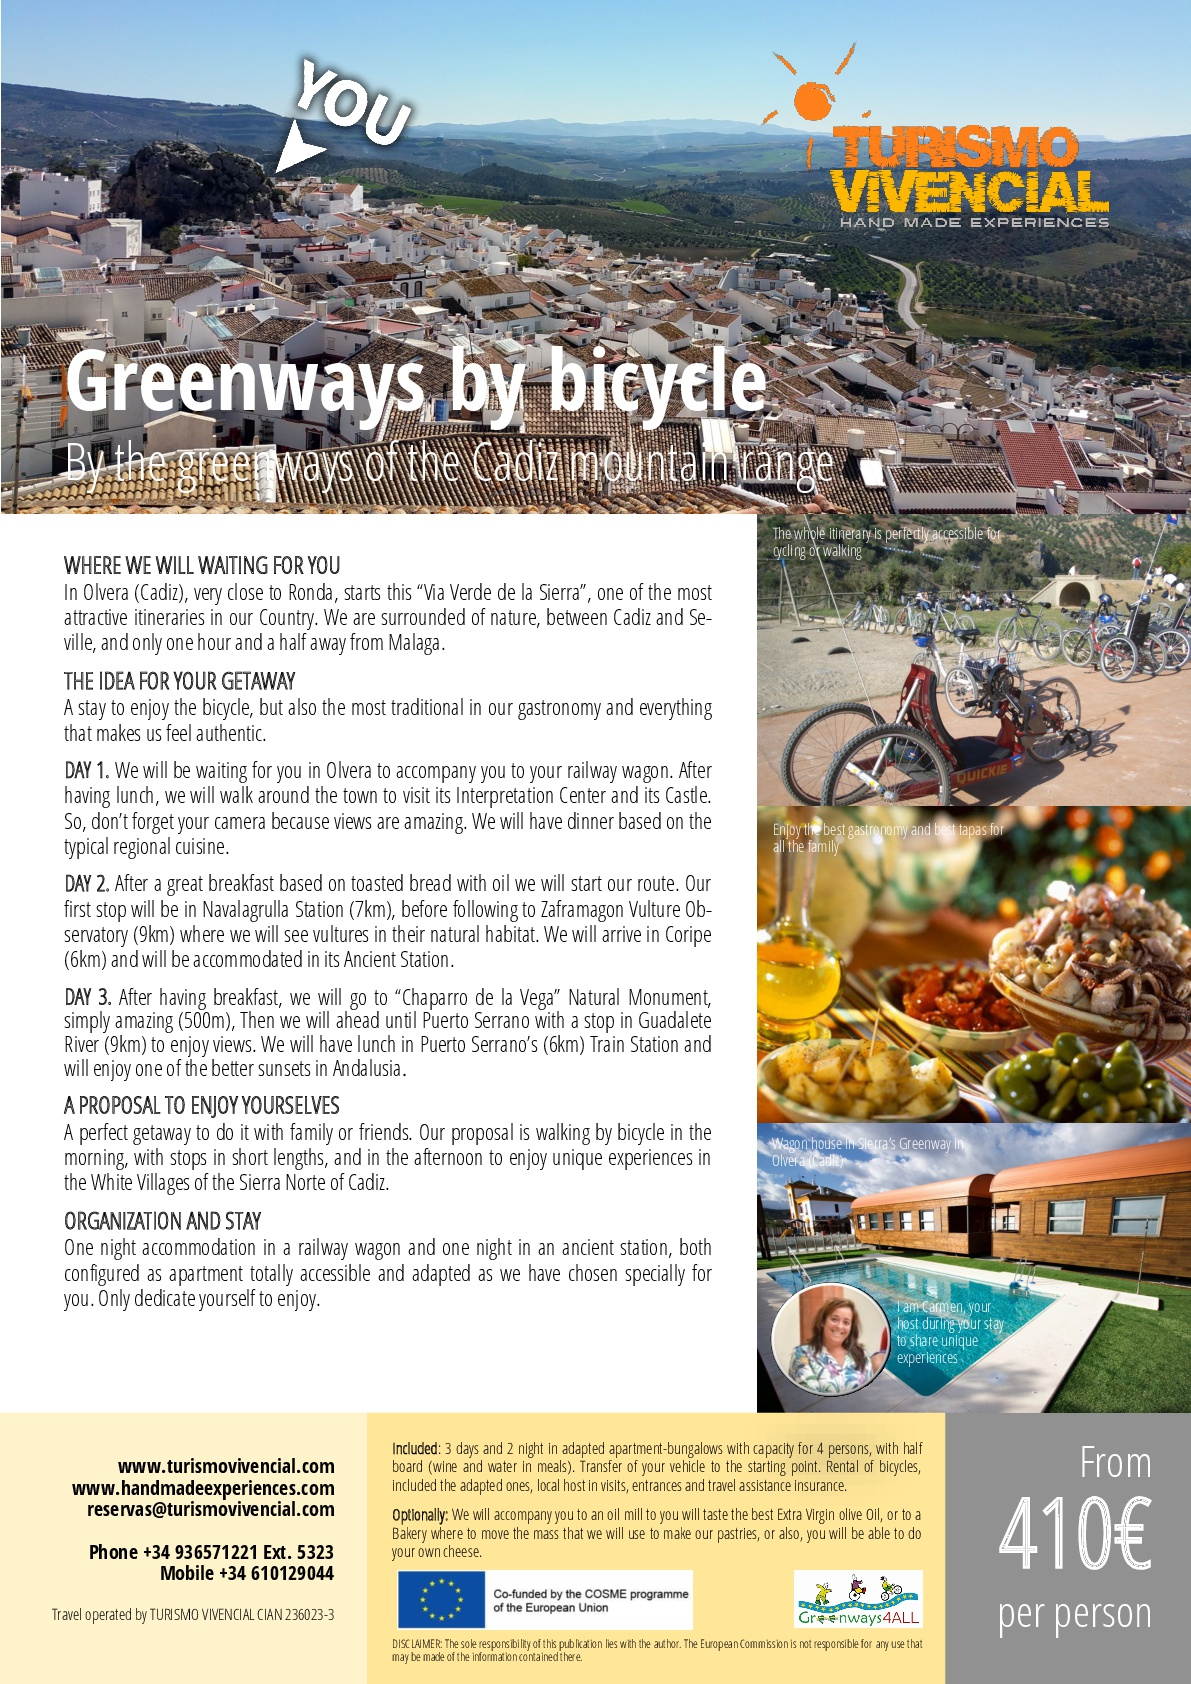 GREENWAYS BY BICYCLE